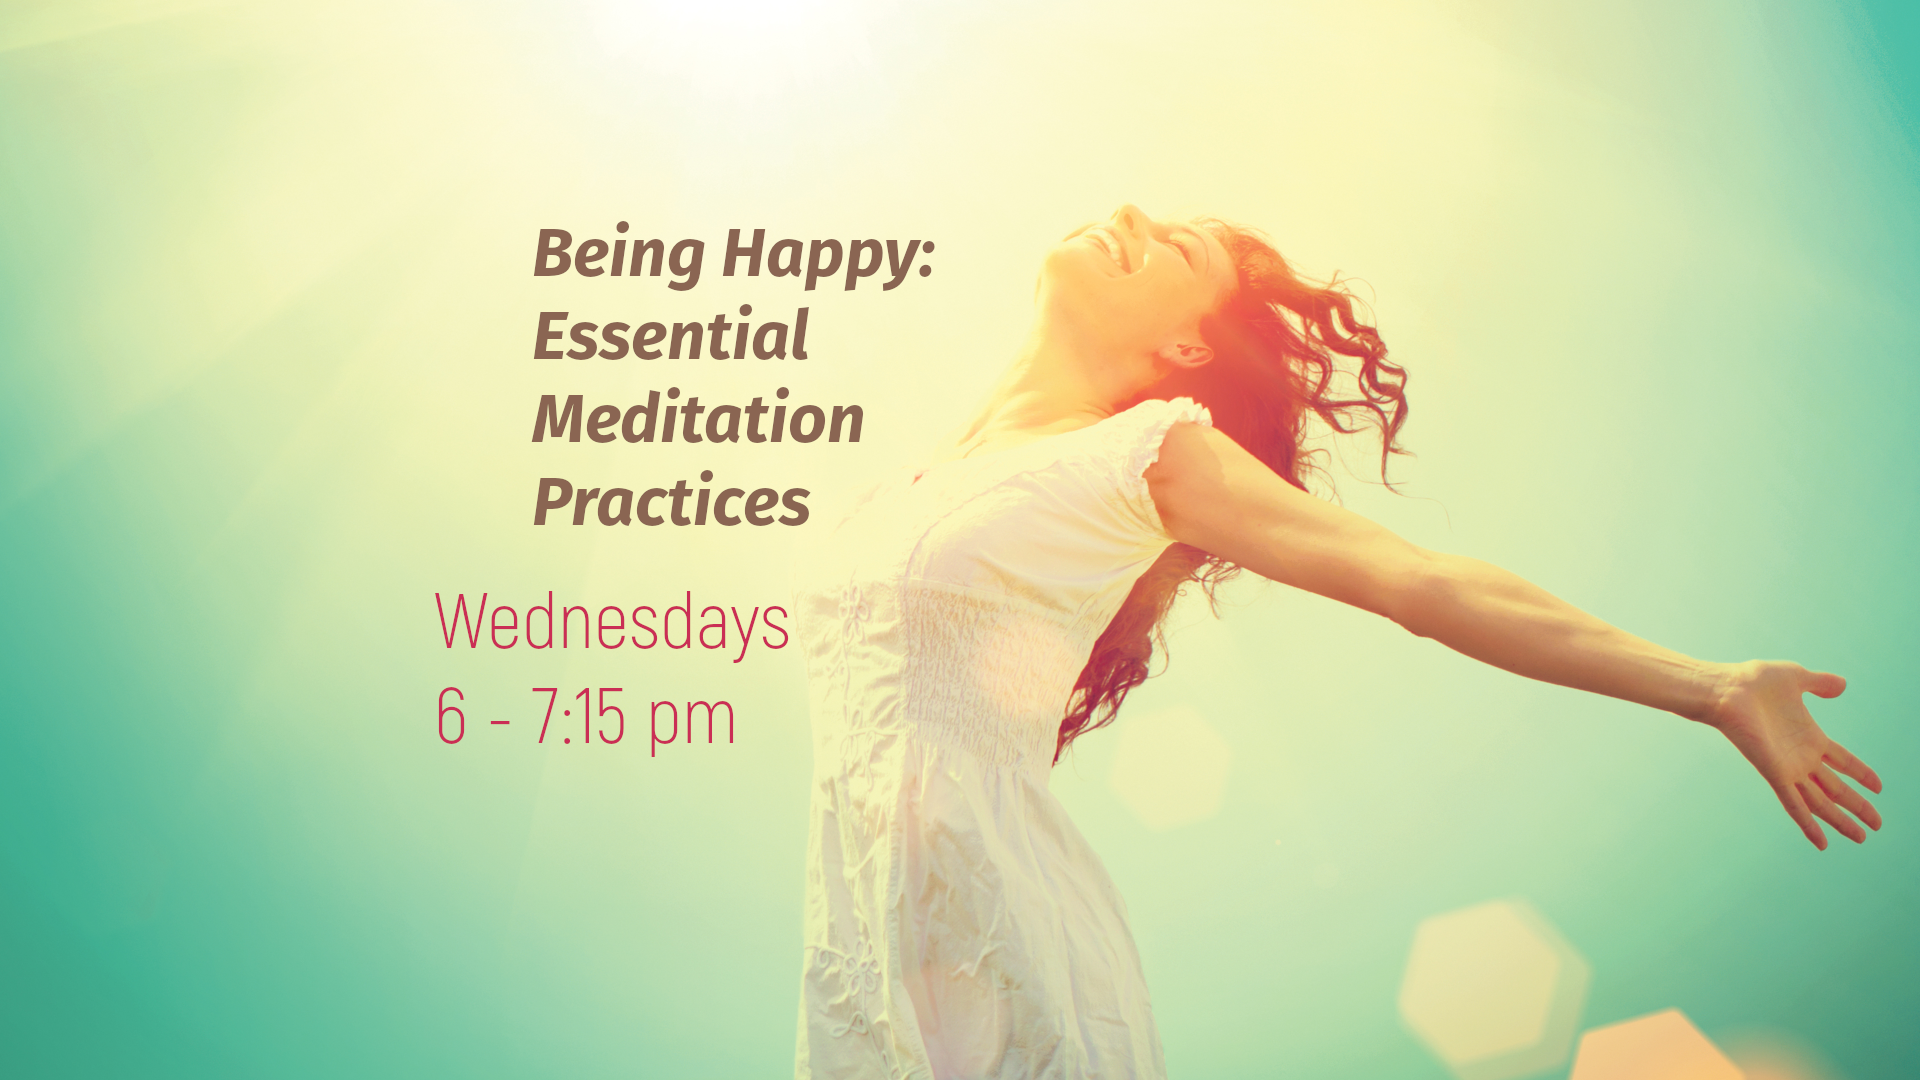 Being Happy: Essential Meditation Practices